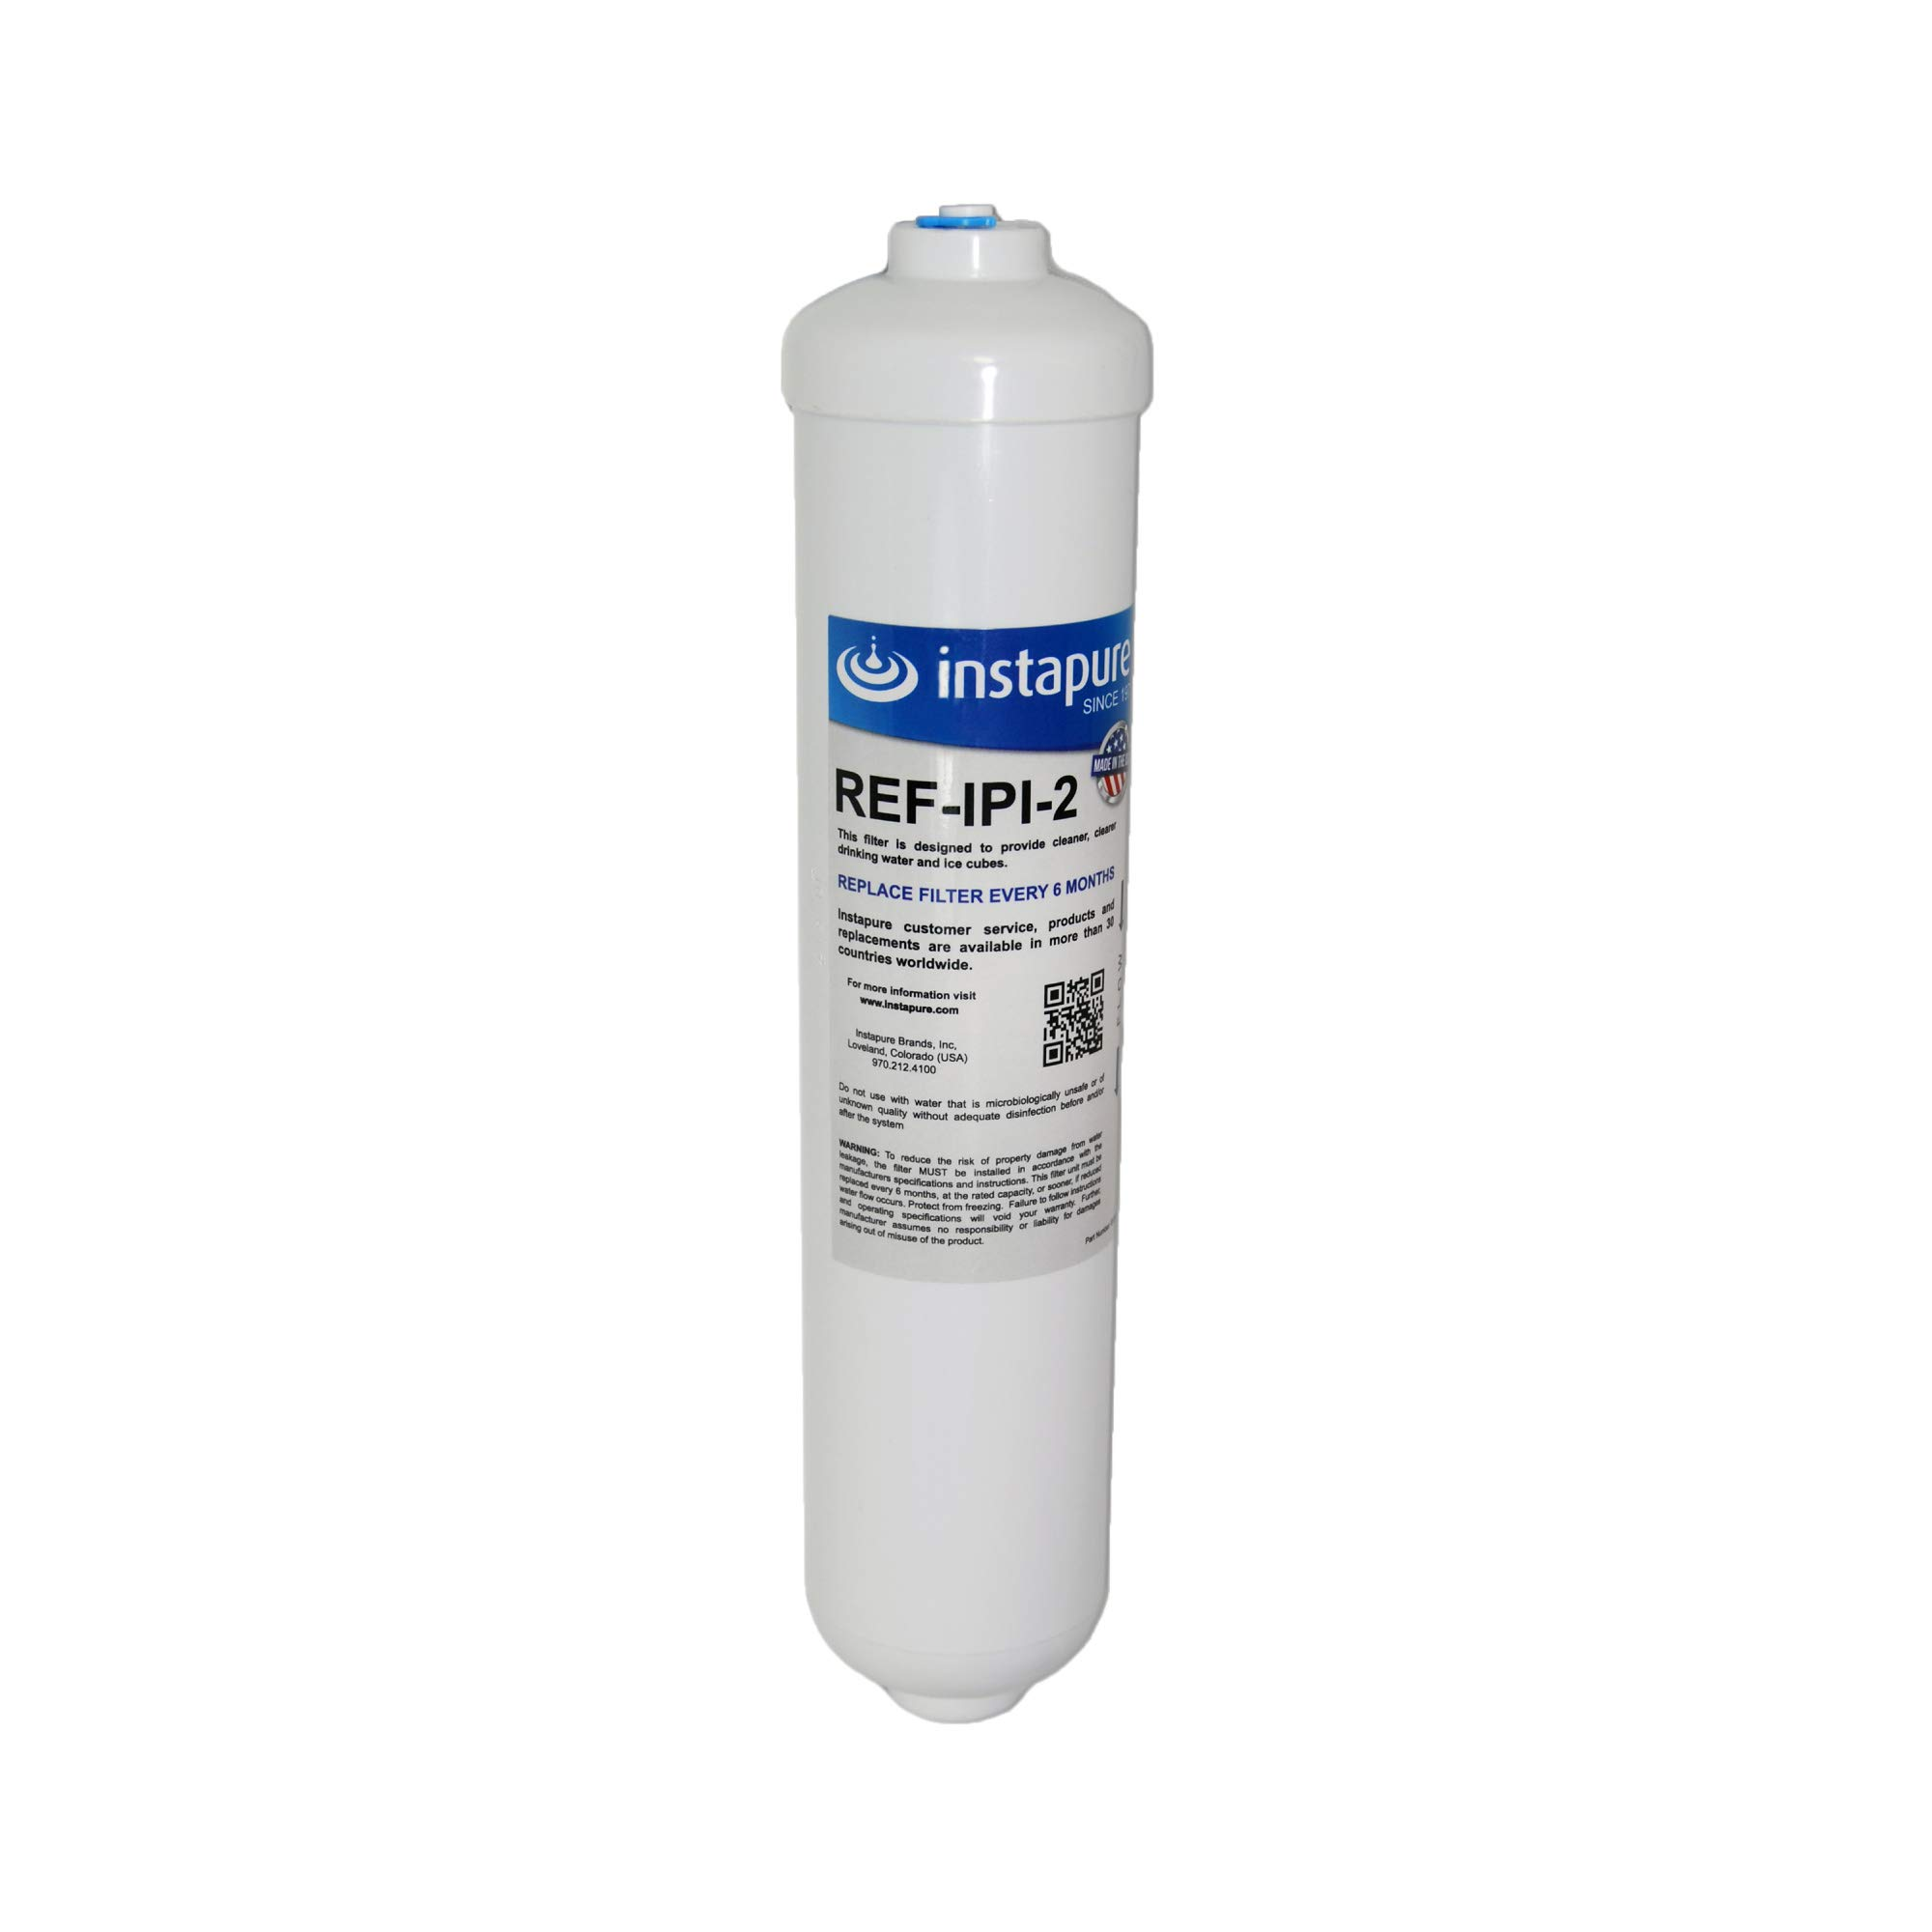 Instapure REF-IPI-2 ULTRA Inline Filter, MADE IN USA, Compatible with Samsung Water Filters DA29-10105C and more. Delivers great tasting water! by Instapure